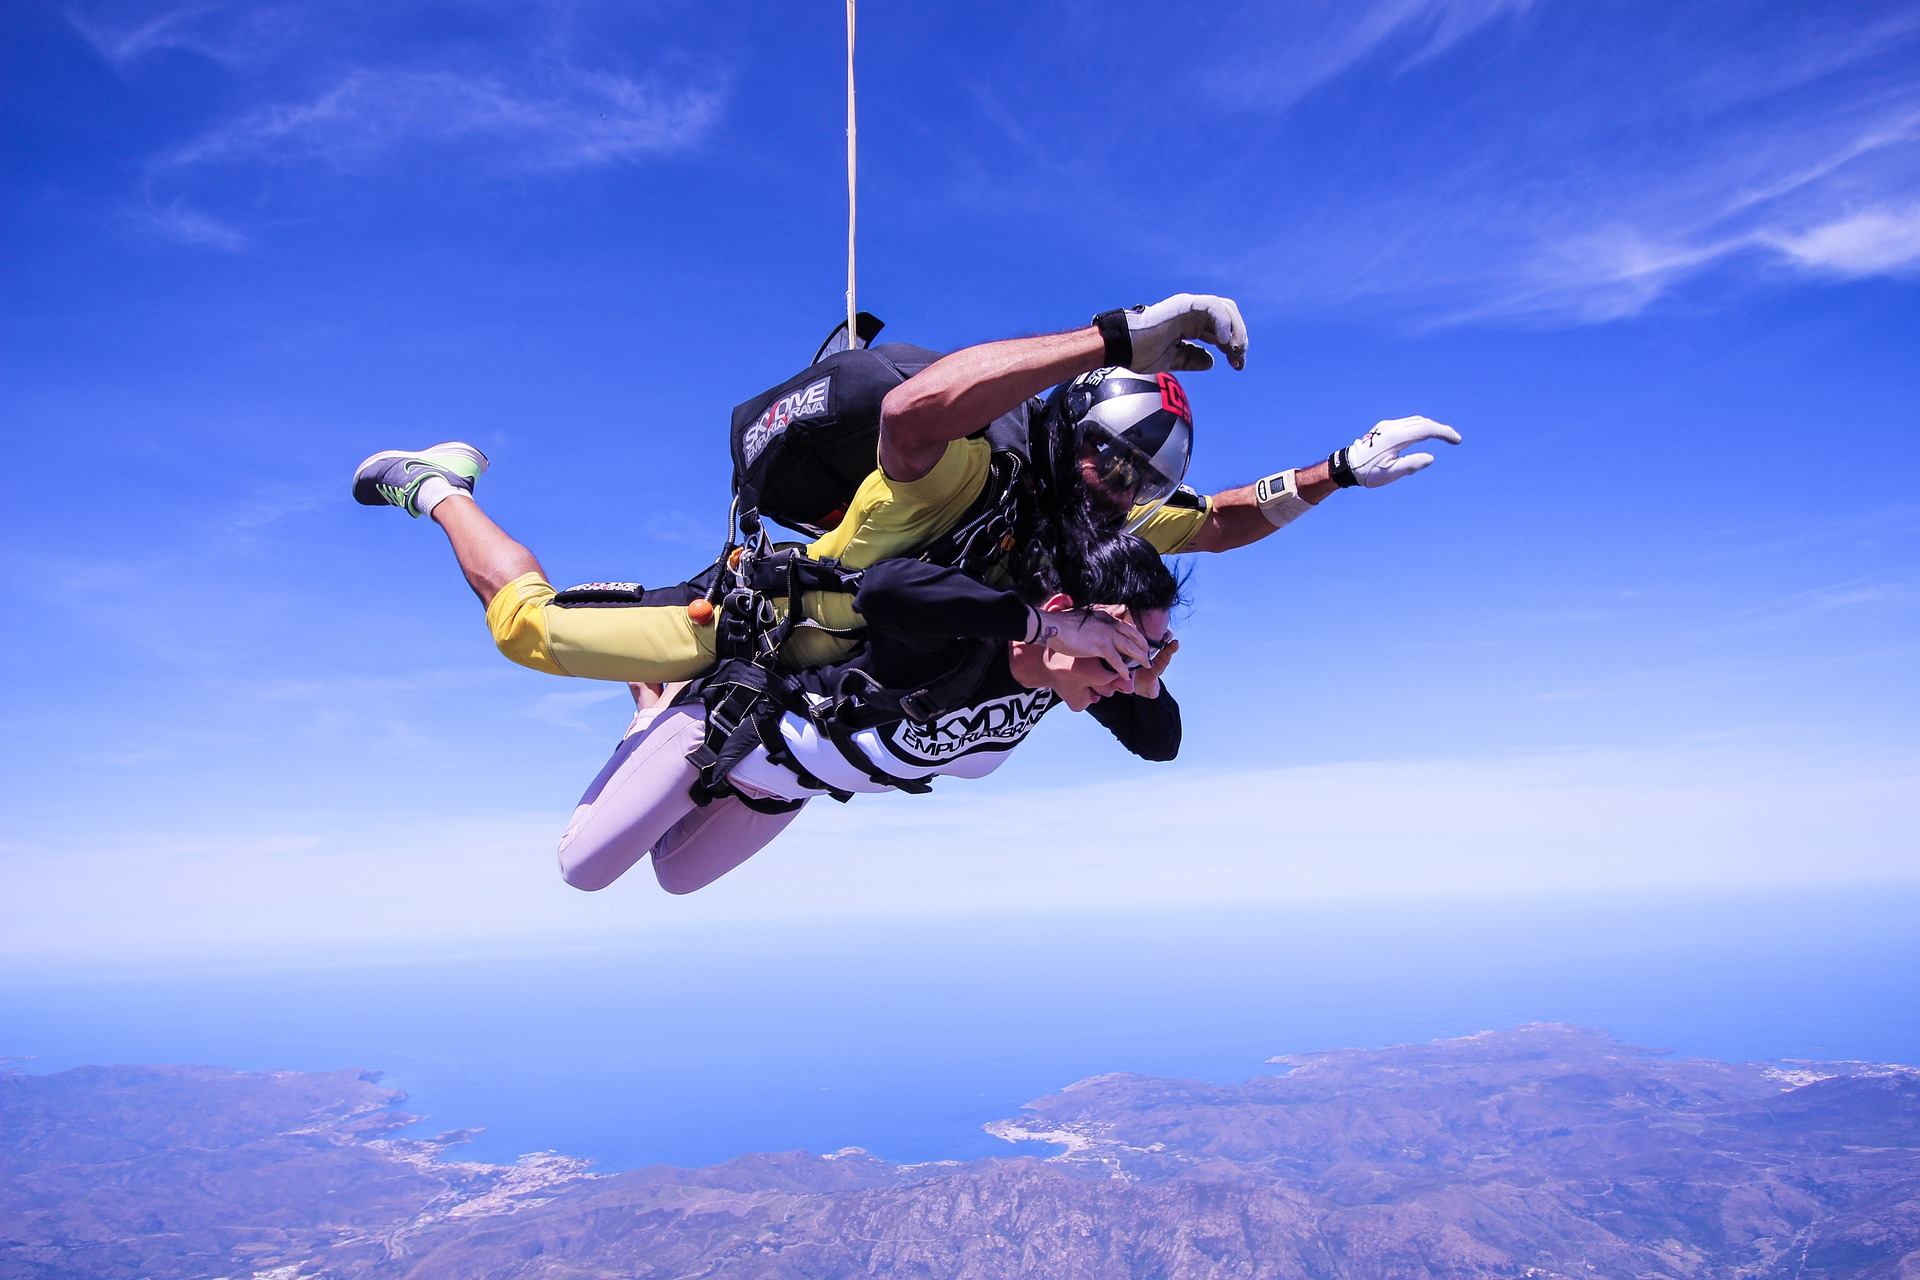 All you need to know about tandem skydiving